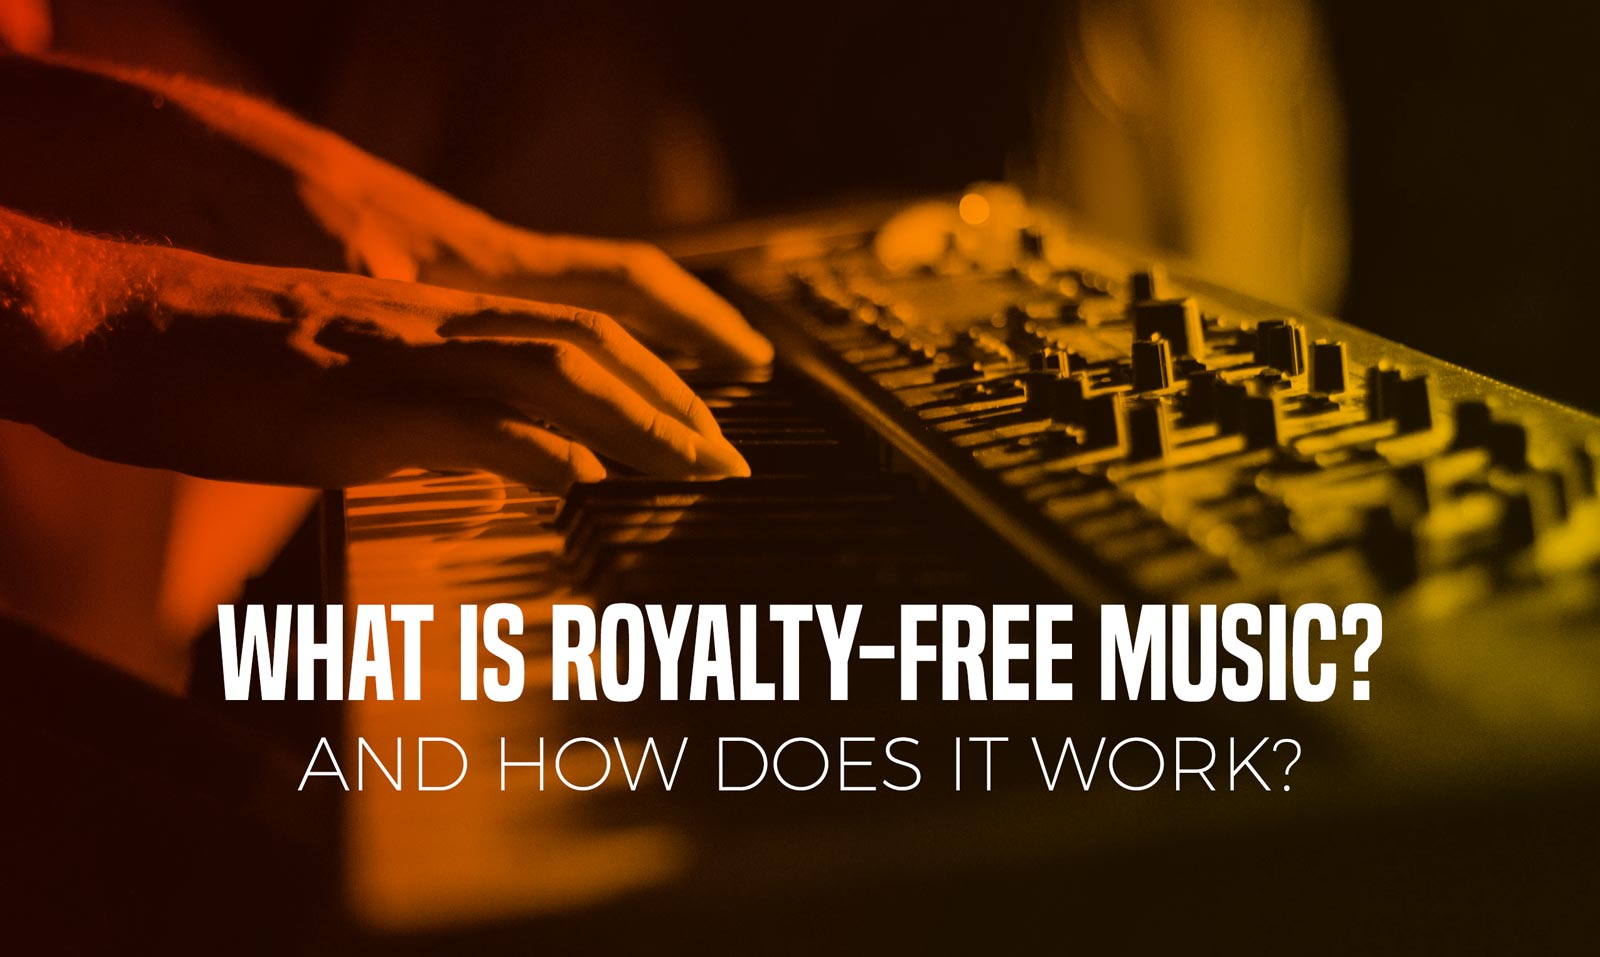 What Is Royalty-Free Music and How Does It Work?